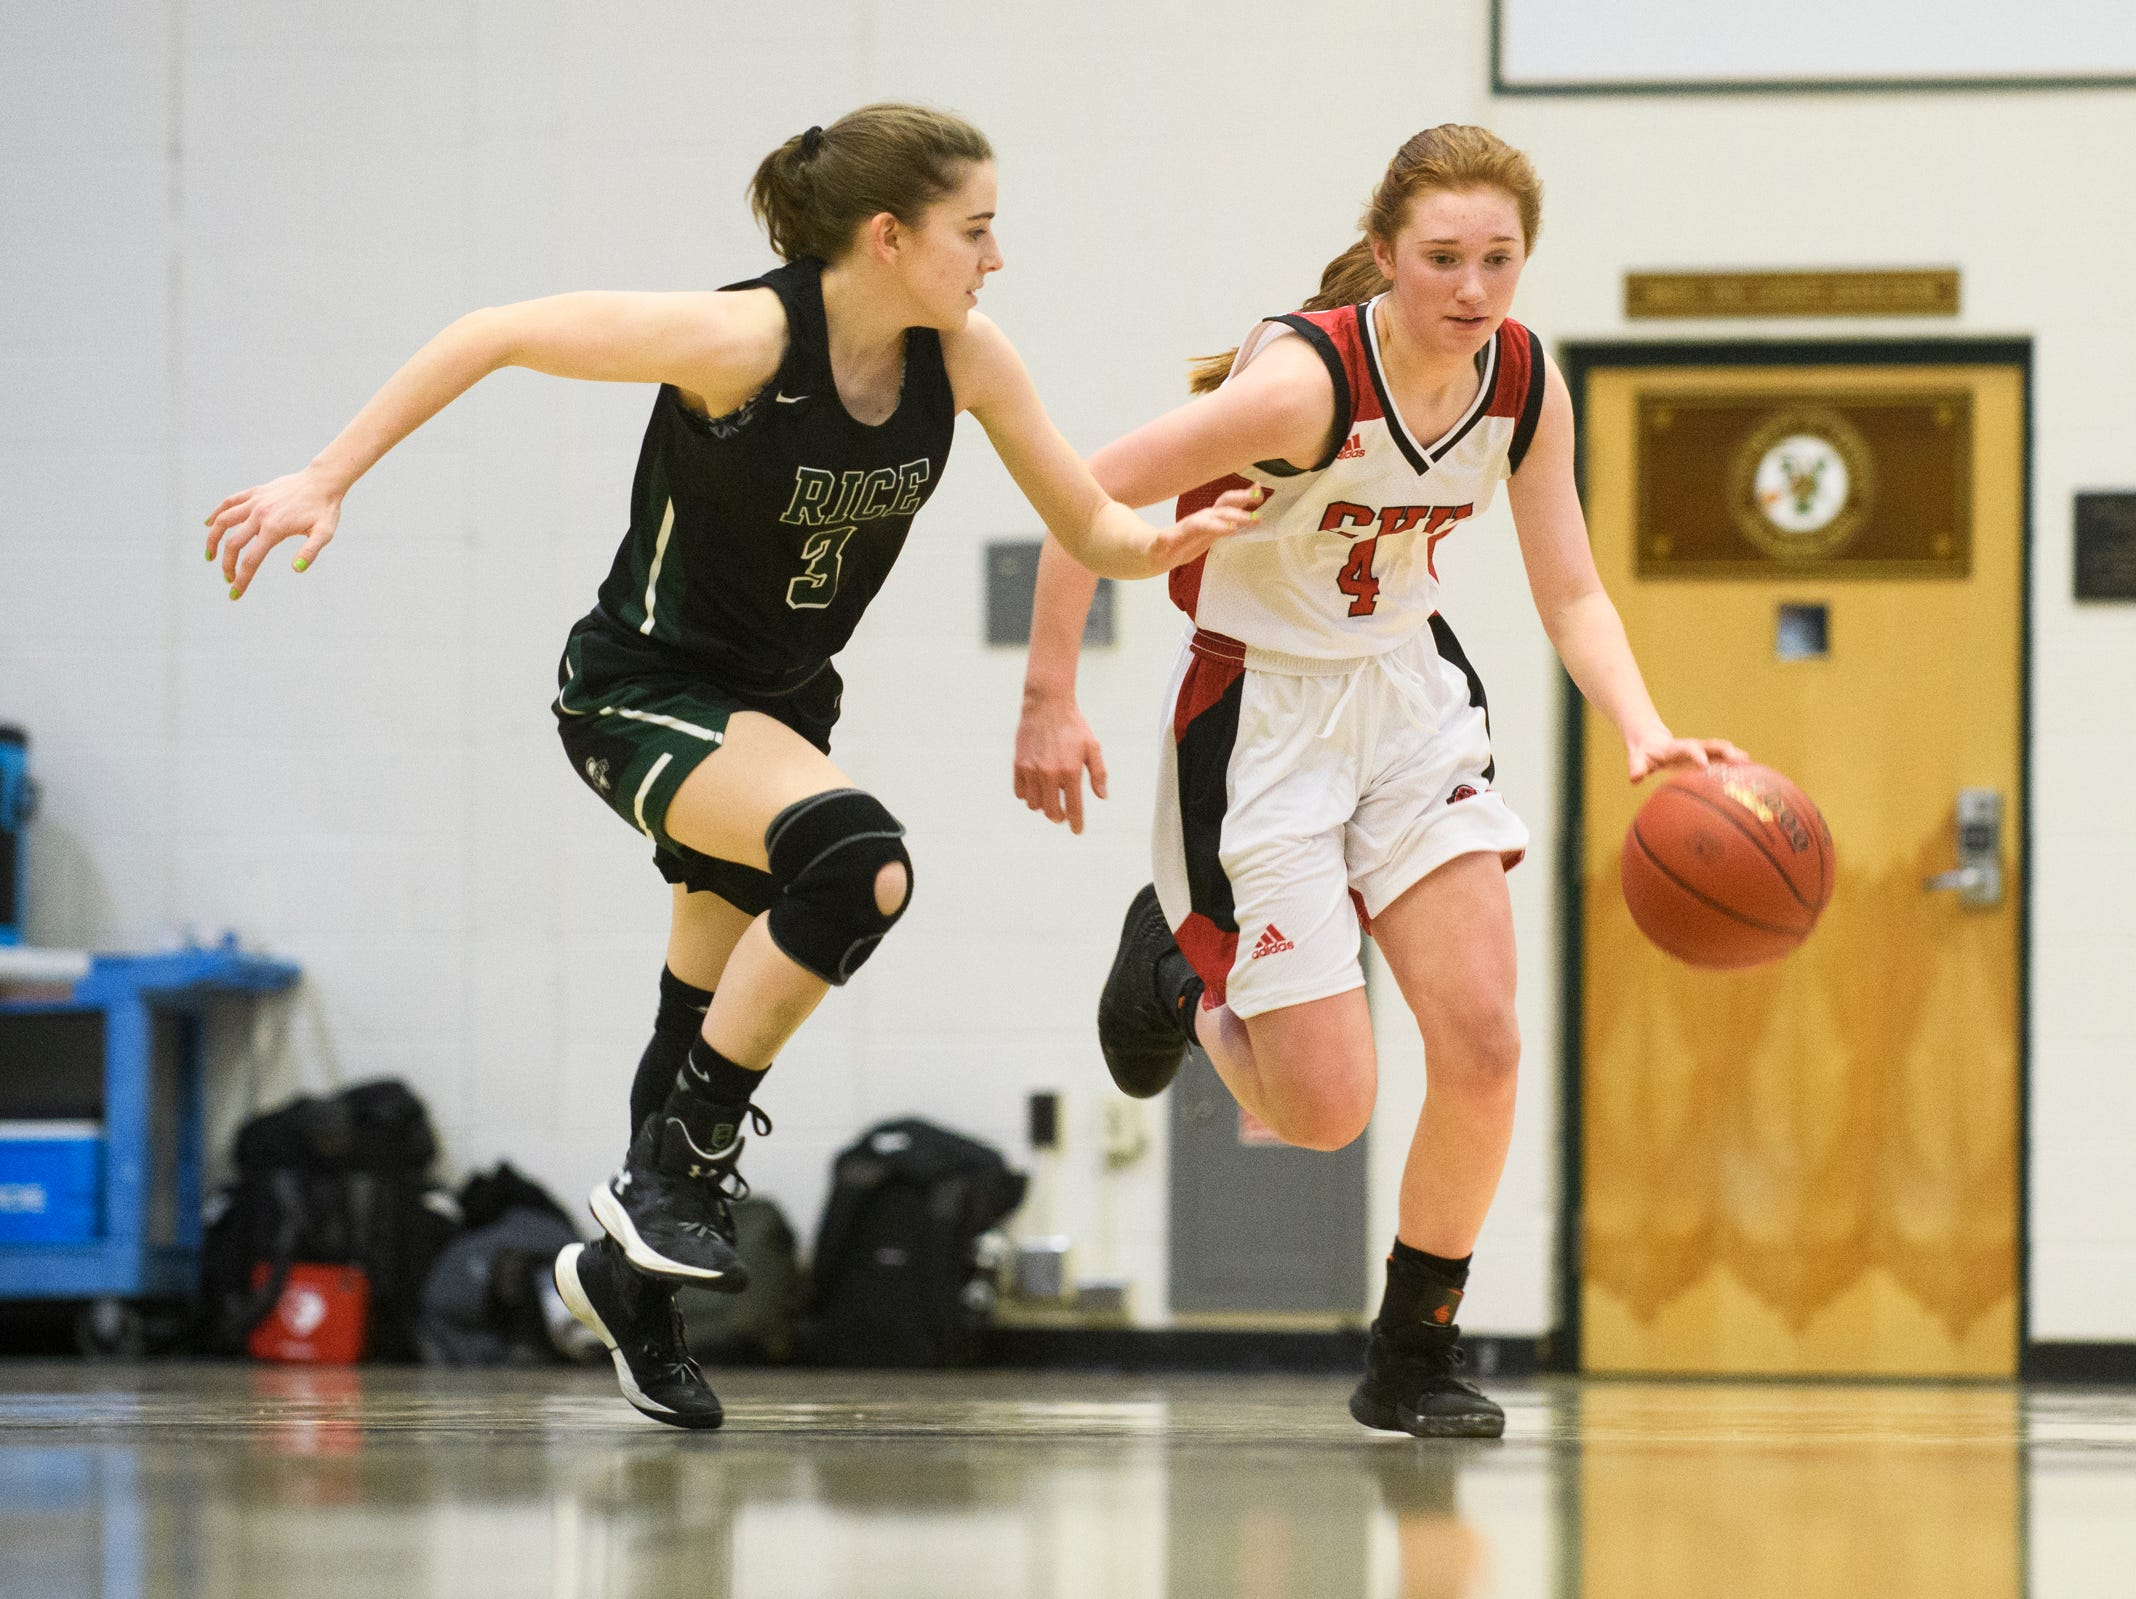 CVU's Catherine Gilwee (4) dribbles the ball down the court past Rice's Sadie Vincent (3) during the girls semifinal basketball game between the Rice Green Knights and the Champlain Valley Union Redhawks at Patrick Gym on Wednesday nigh March 6, 2019 in Burlington, Vermont.